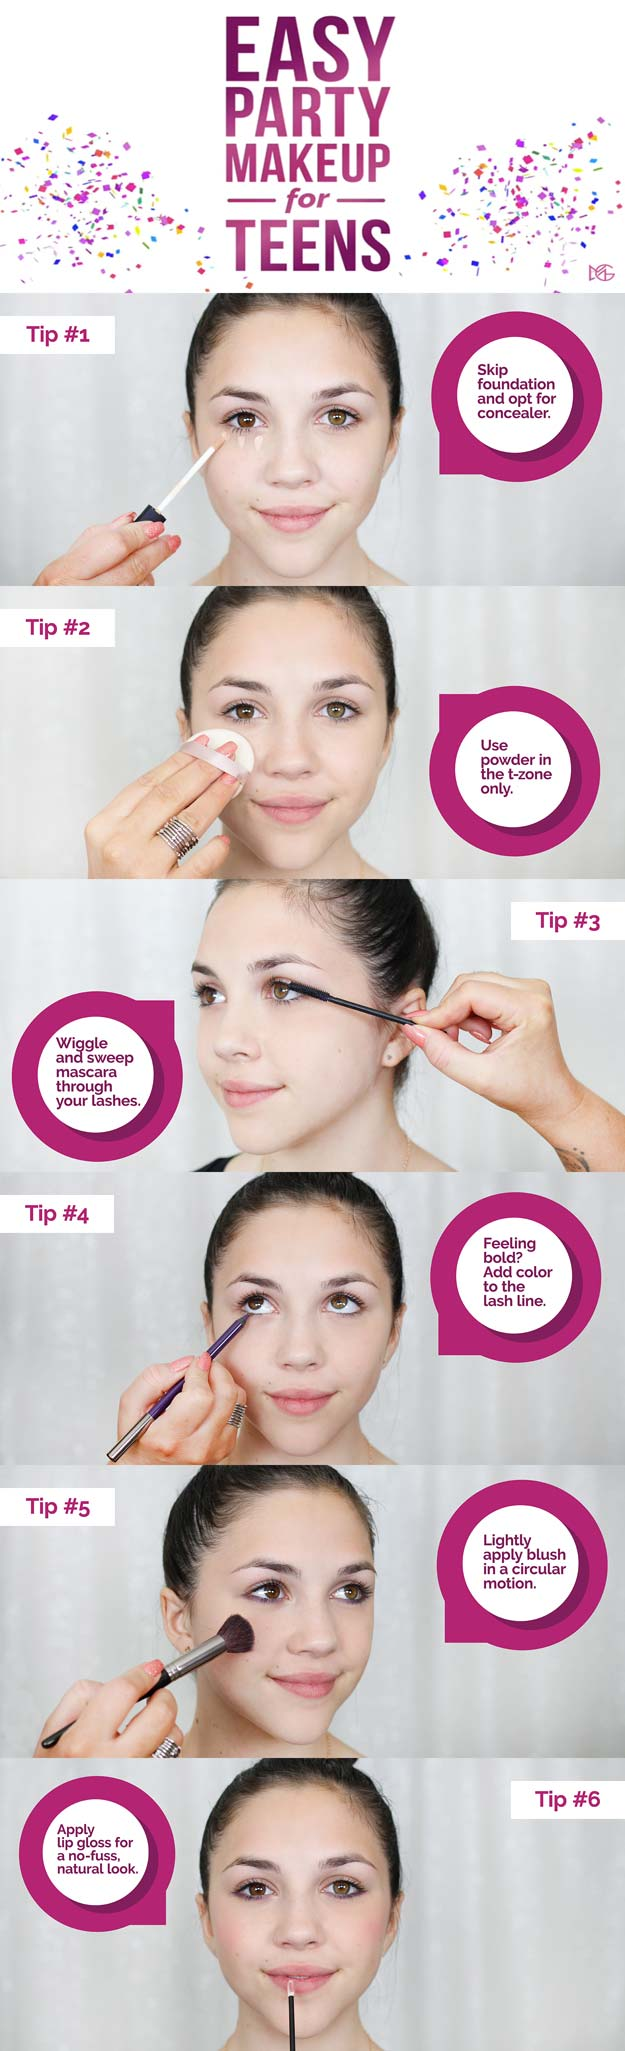 Best Makeup Tutorials for Teens -Easy Makeup Artist for Teens - Easy Makeup Ideas for Beginners - Step by Step Tutorials for Foundation, Eye Shadow, Lipstick, Cheeks, Contour, Eyebrows and Eyes - Awesome Makeup Hacks and Tips for Simple DIY Beauty - Day and Evening Looks http://diyprojectsforteens.com/makeup-tutorials-teens